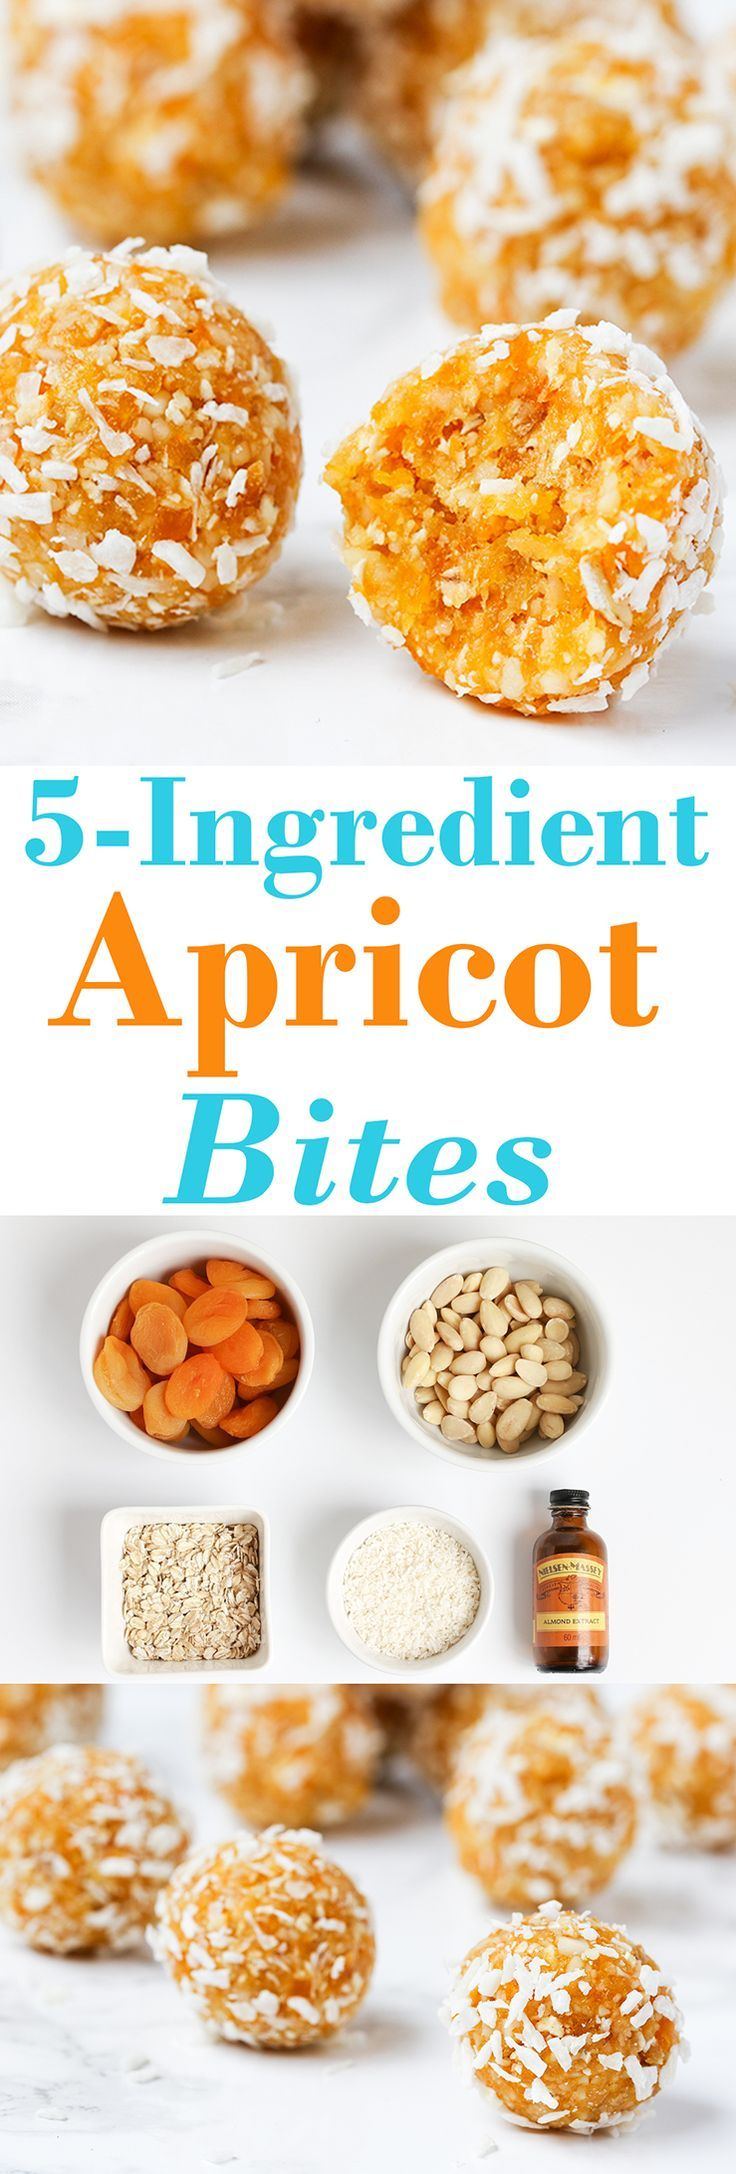 15 minutes and 5 ingredients is all you need for these nutritious bites!